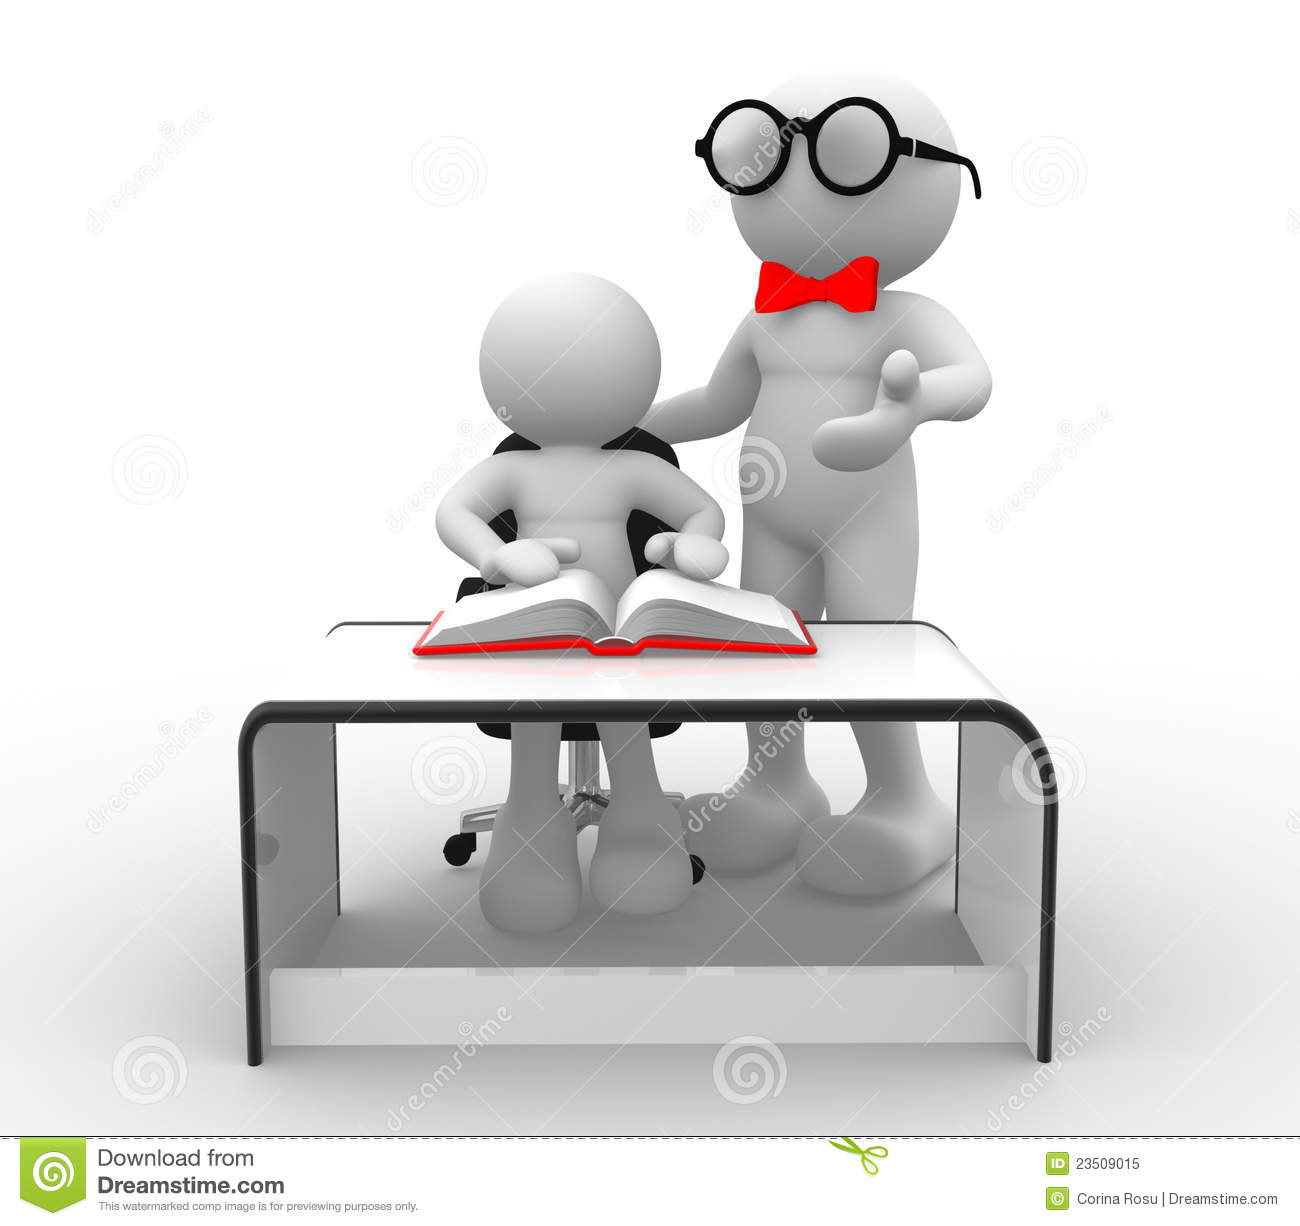 Book Icon Vector Male Student Or Teacher Person Profile: Teacher And Student Stock Illustration. Image Of Human